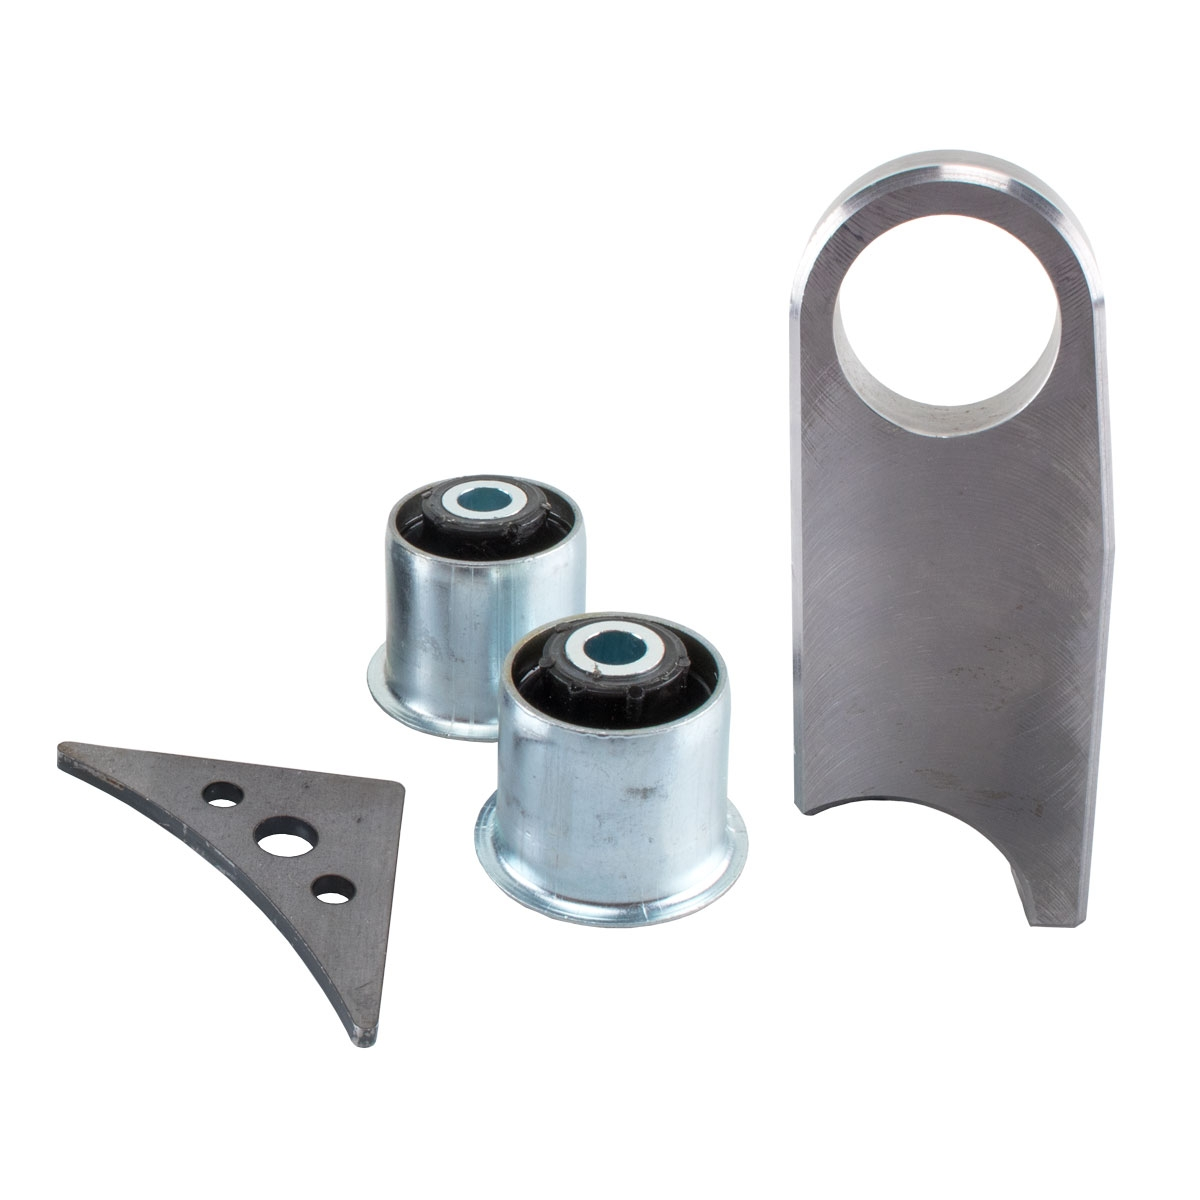 Image of Synergy Front Uca Axle Side Mount With Ddb Bushings